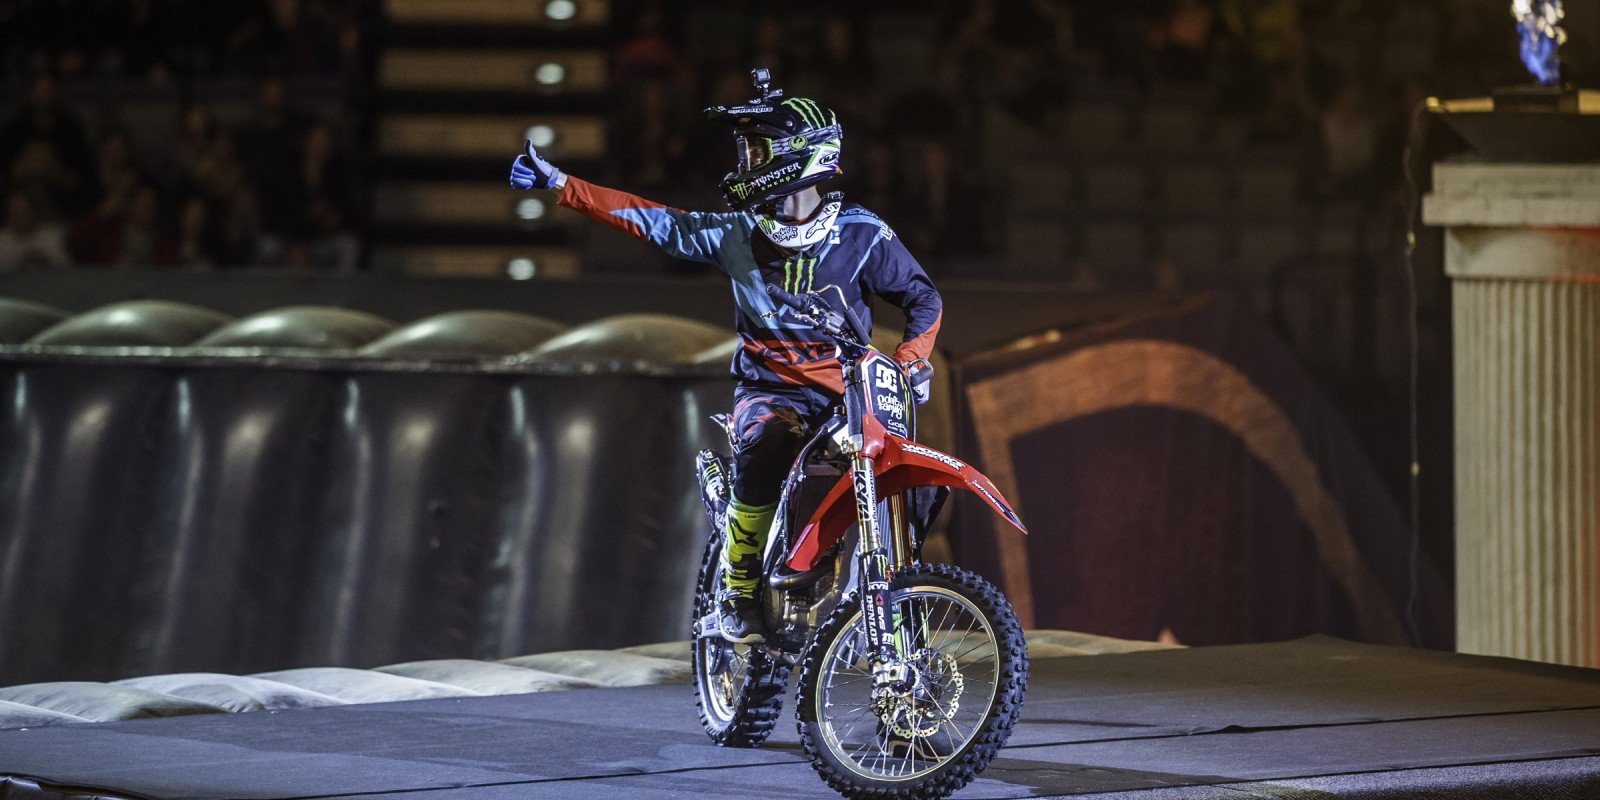 Photos of Nate Adams at the FMX Gladiator Games 2016 event in Prague, Czech Republic